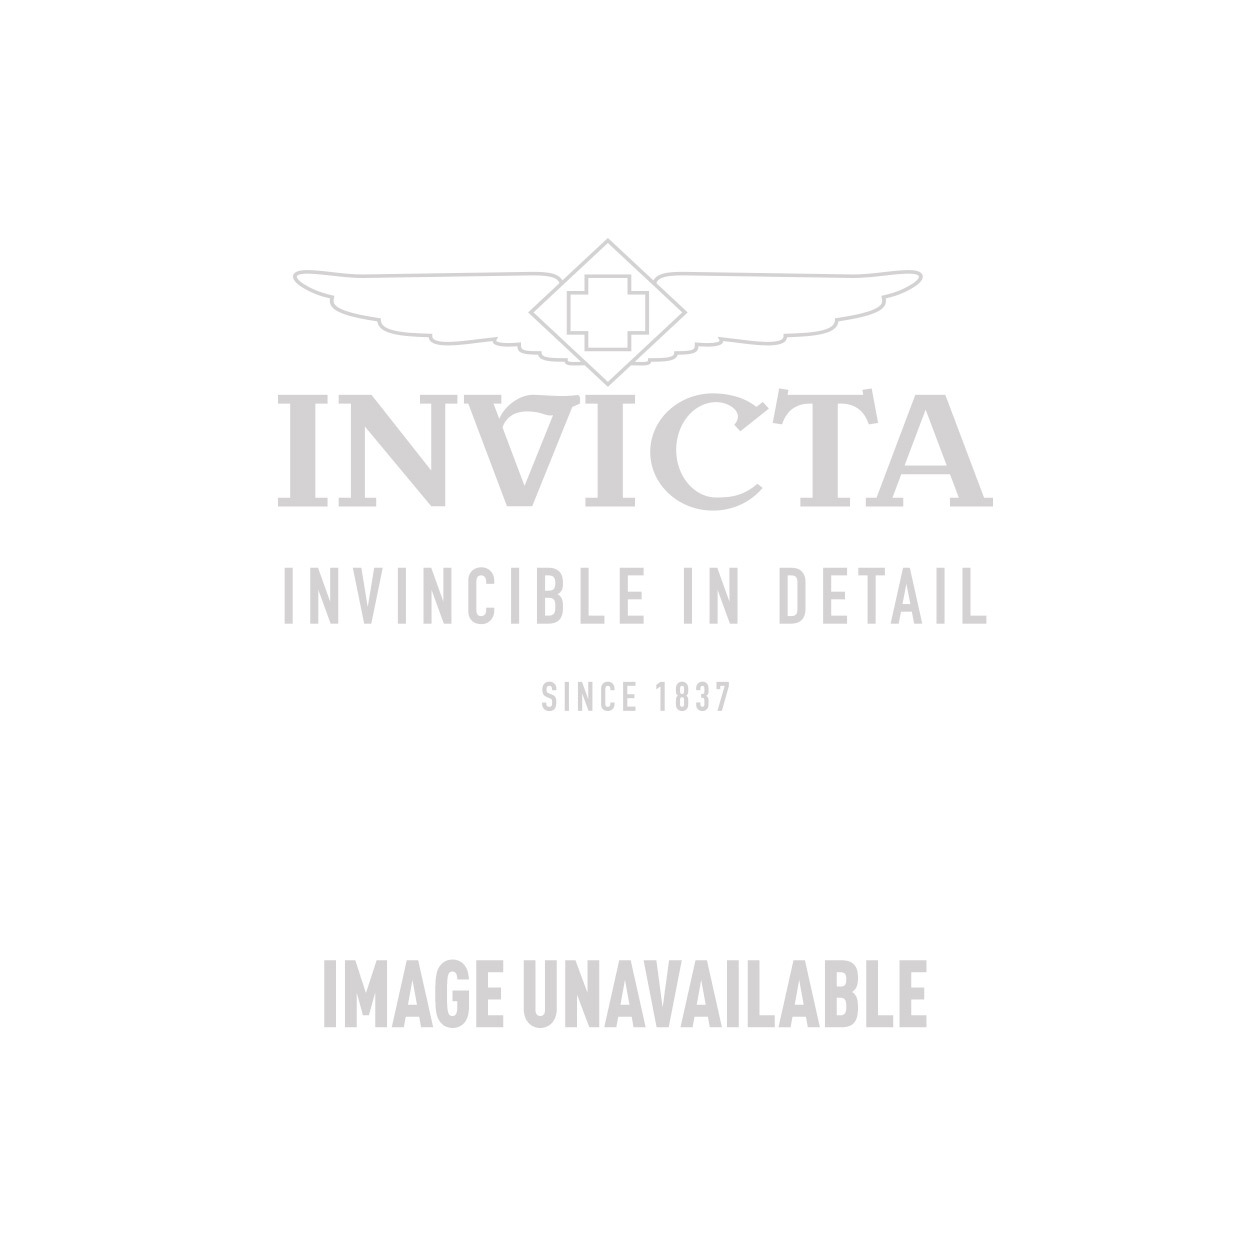 Invicta S1 Rally Automatic Watch - Black case with Black, Red tone Silicone band - Model 18213